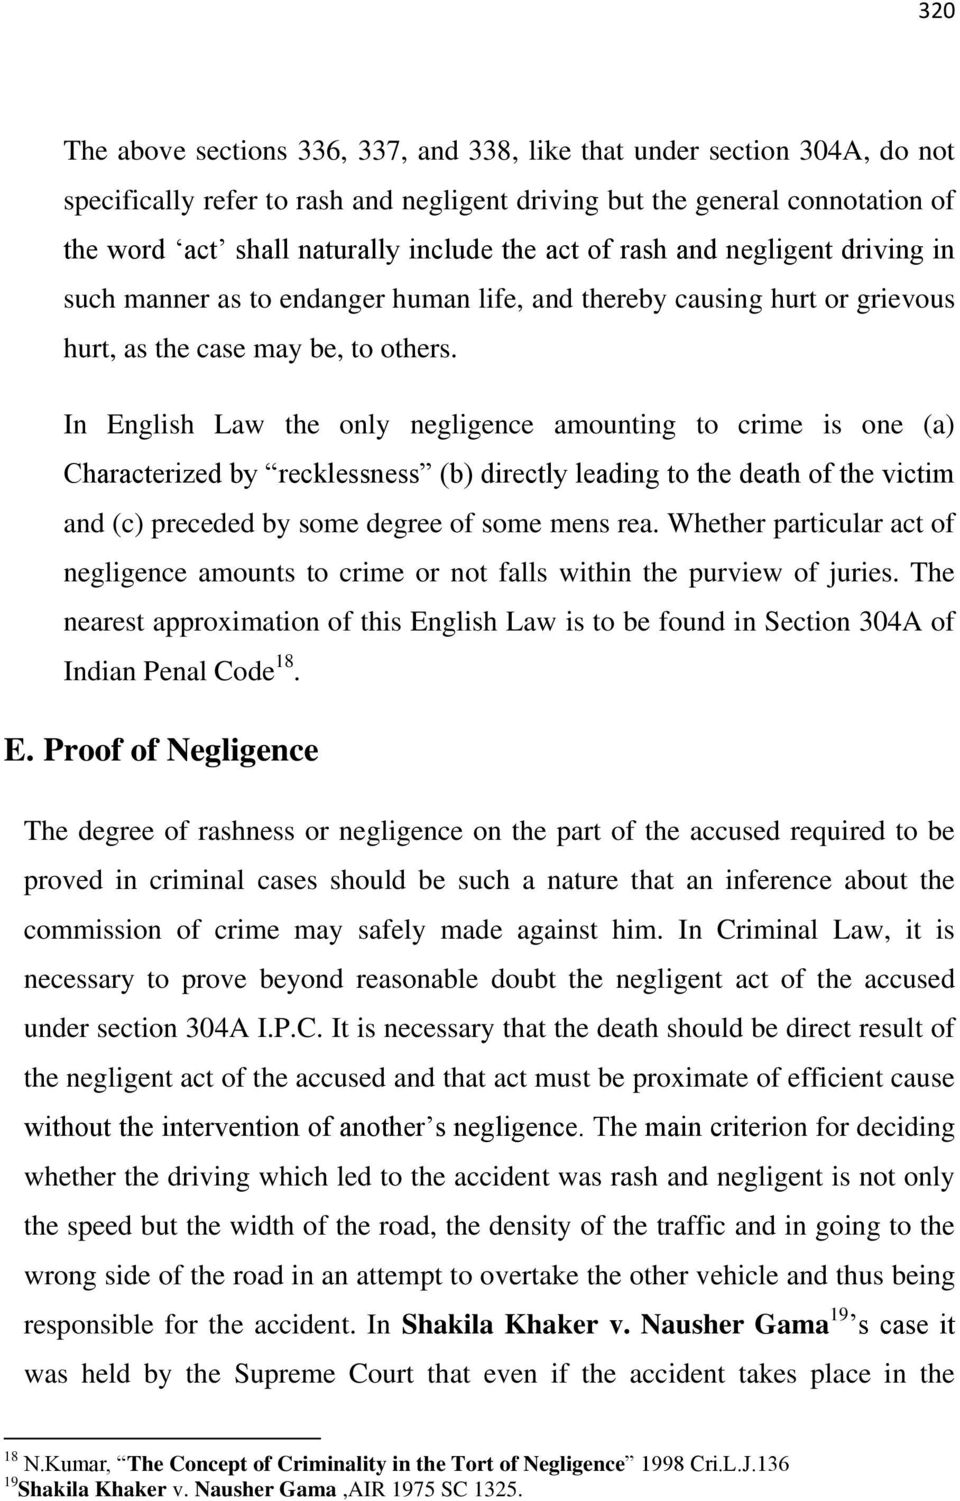 In English Law the only negligence amounting to crime is one (a) Characterized by recklessness (b) directly leading to the death of the victim and (c) preceded by some degree of some mens rea.